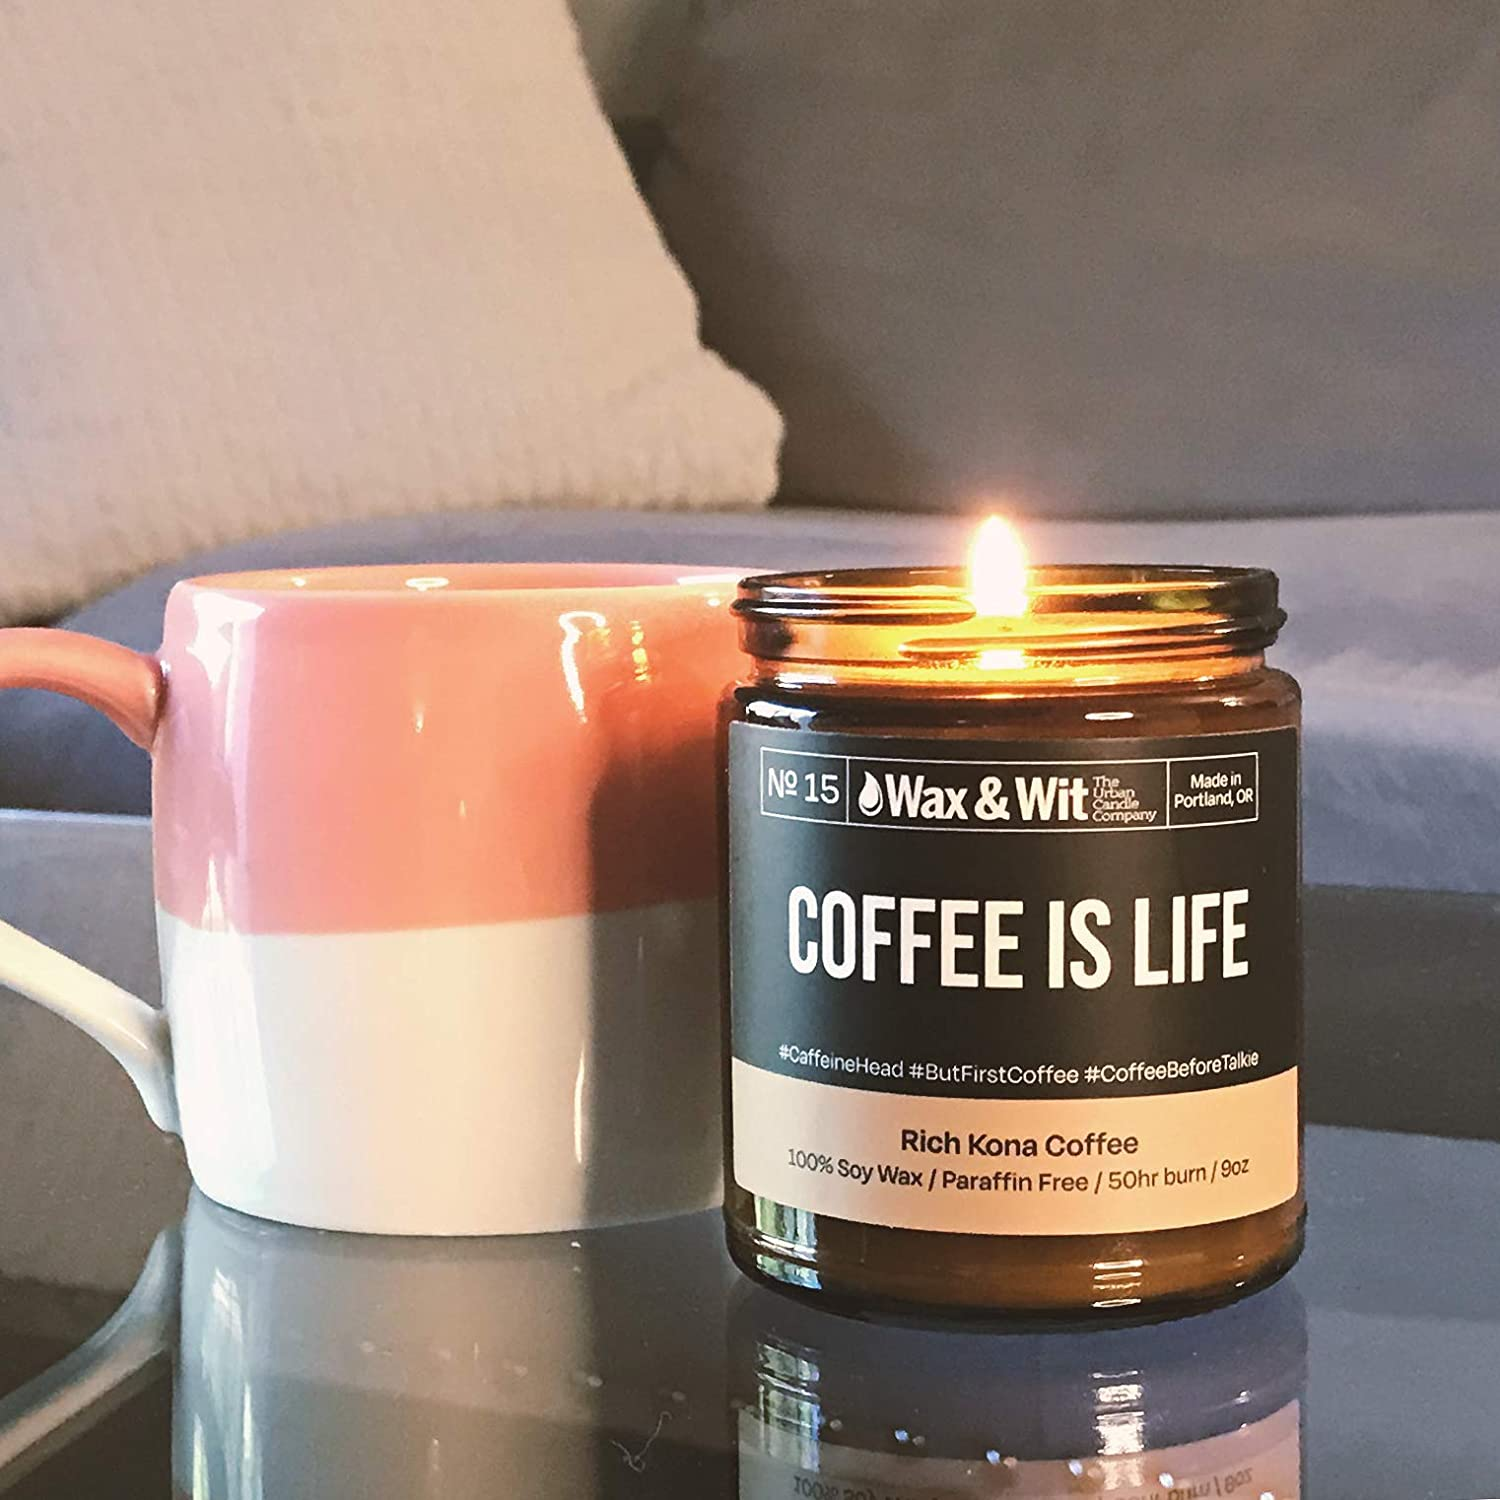 Coffee and Cream Scented Candle  Coffee Candle  Soy Wax Candle  Best Friend Gift  Inspire Candle Shop  Clean Candle